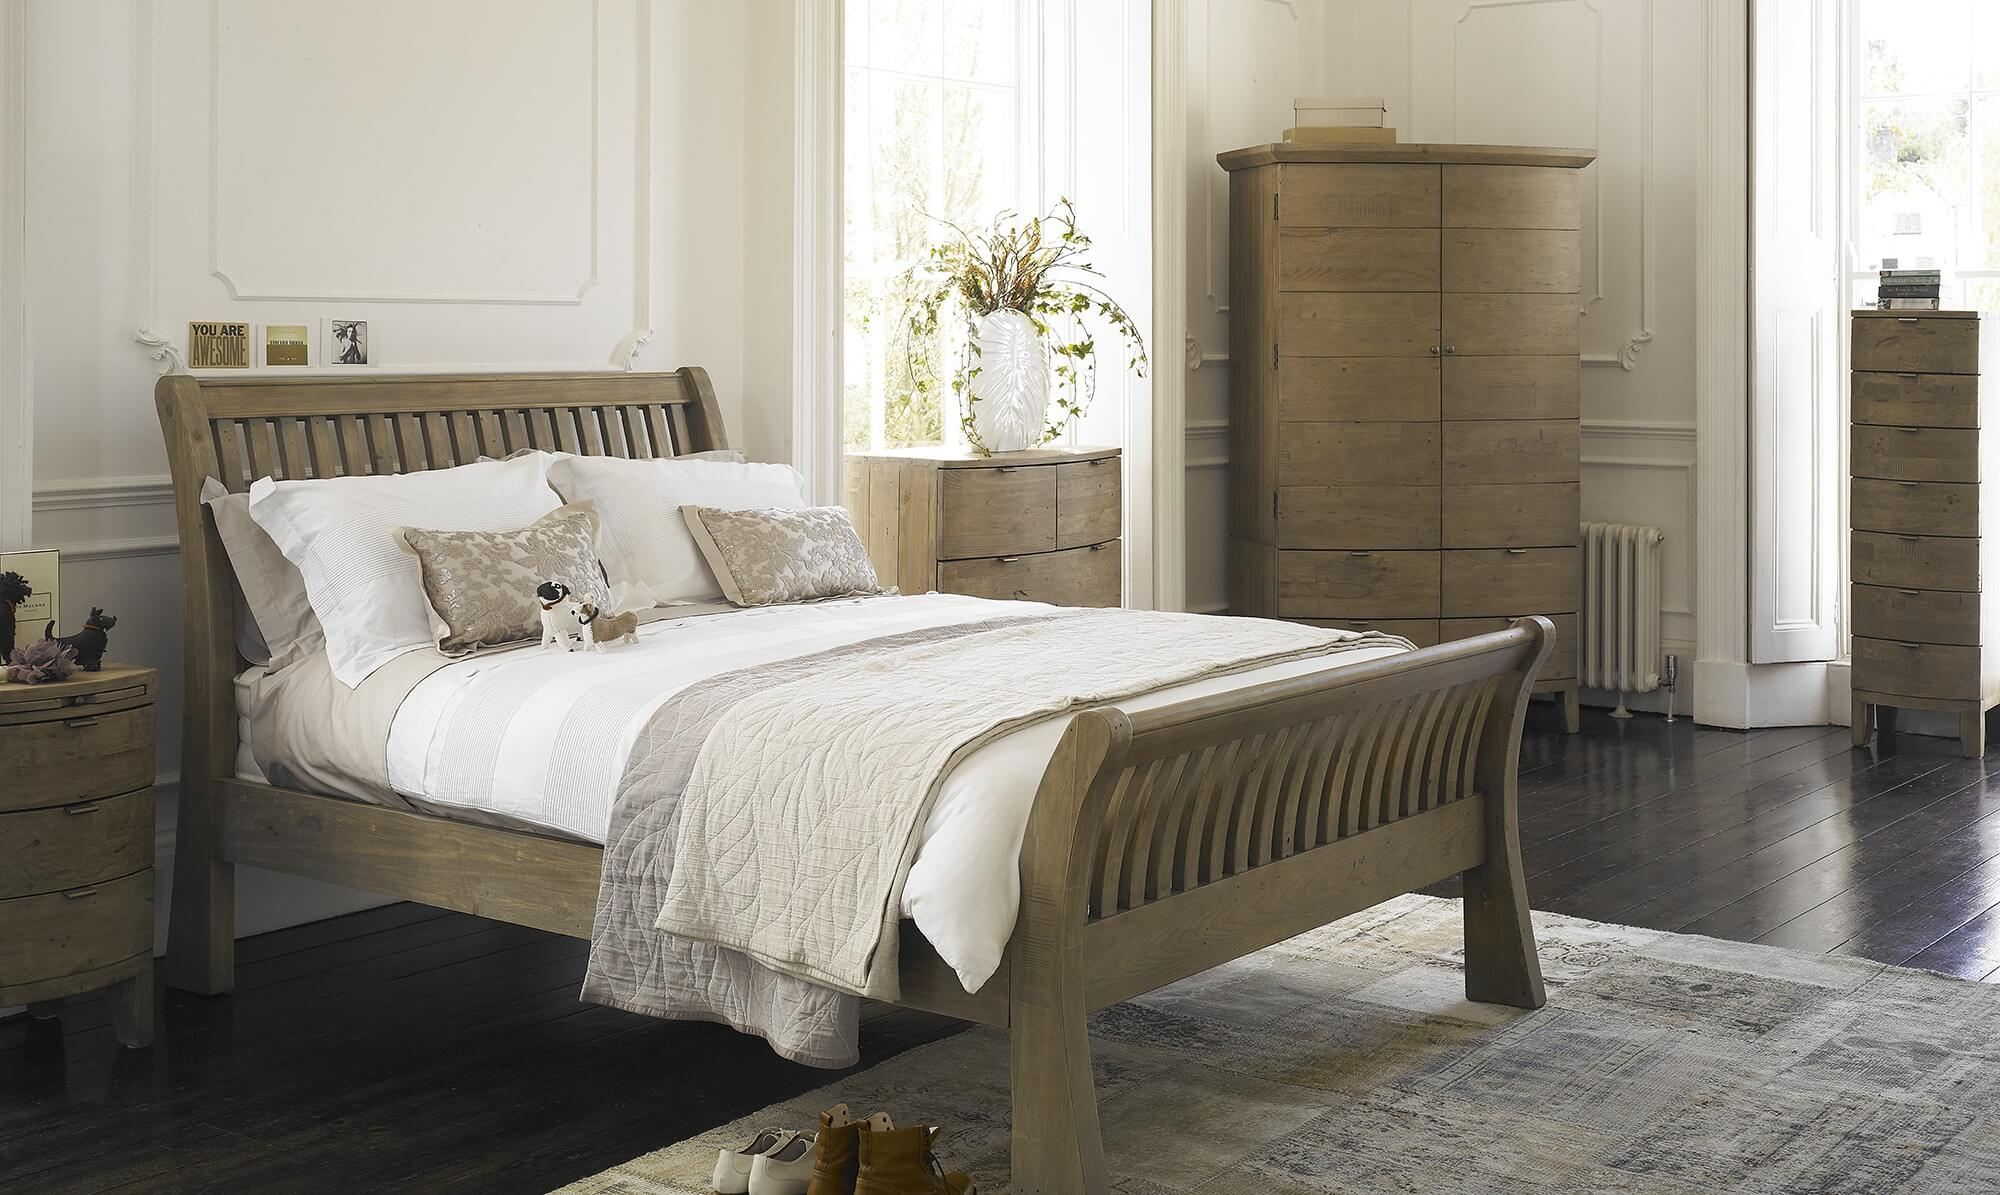 Fairmont wooden bed frame from Fishpools